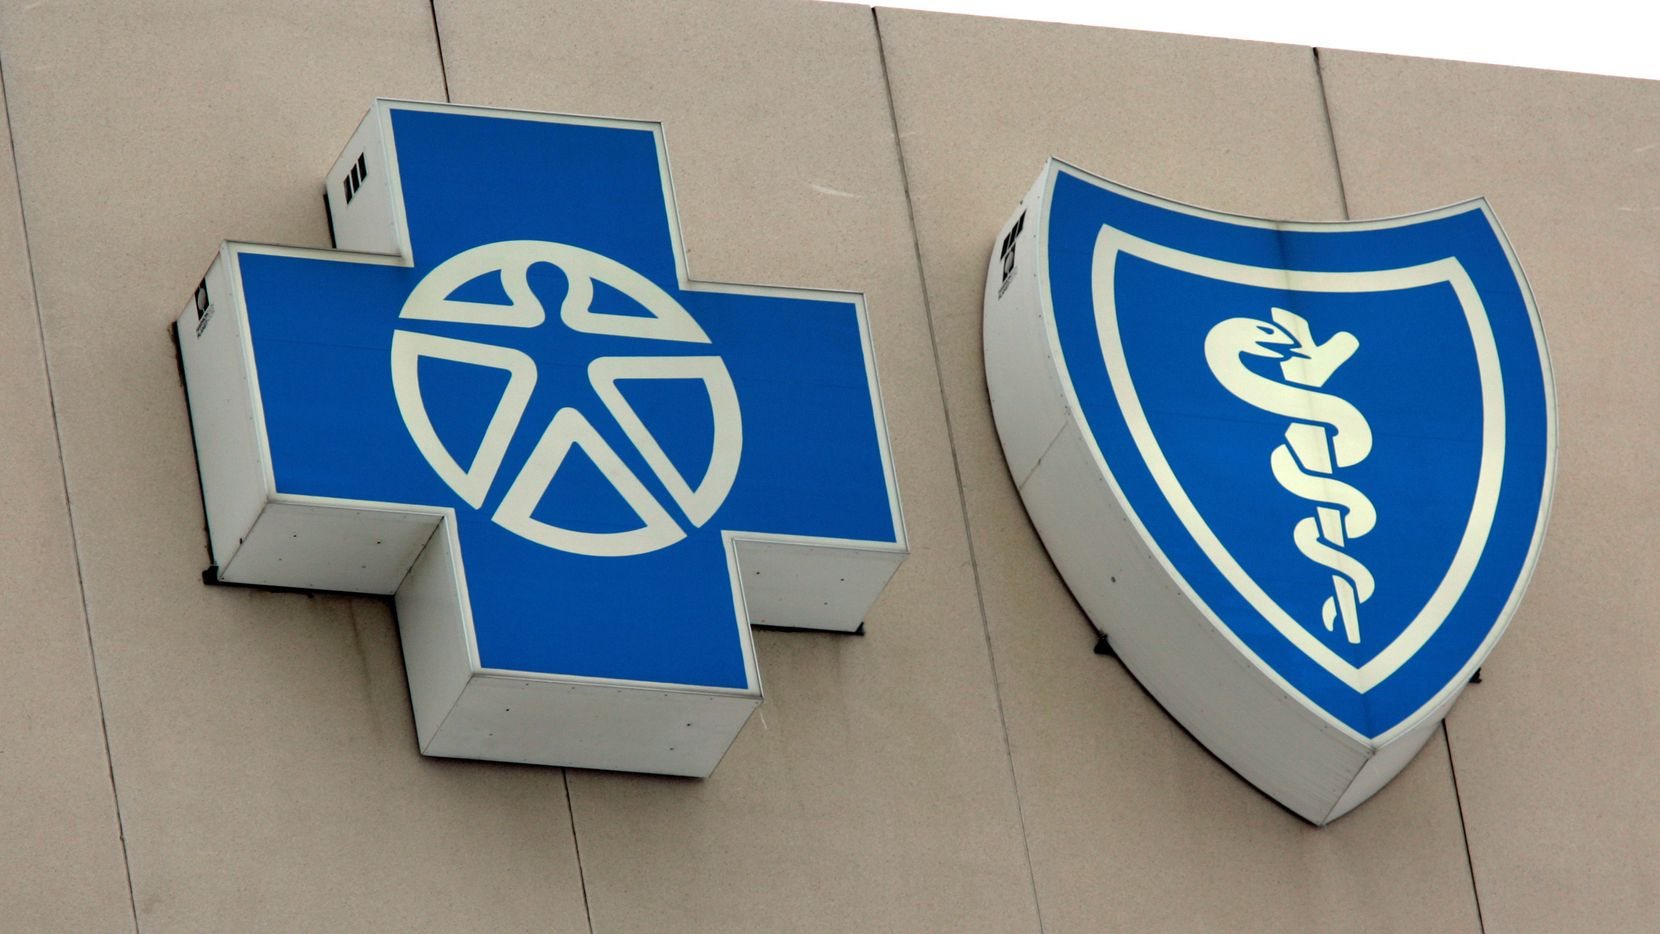 Blue Cross Blue Shield of Texas will co-own 10 medical centers in the Dallas and Houston areas. They will be run by Sanitas USA, a health care company that has clinics in Florida, New Jersey and Connecticut.